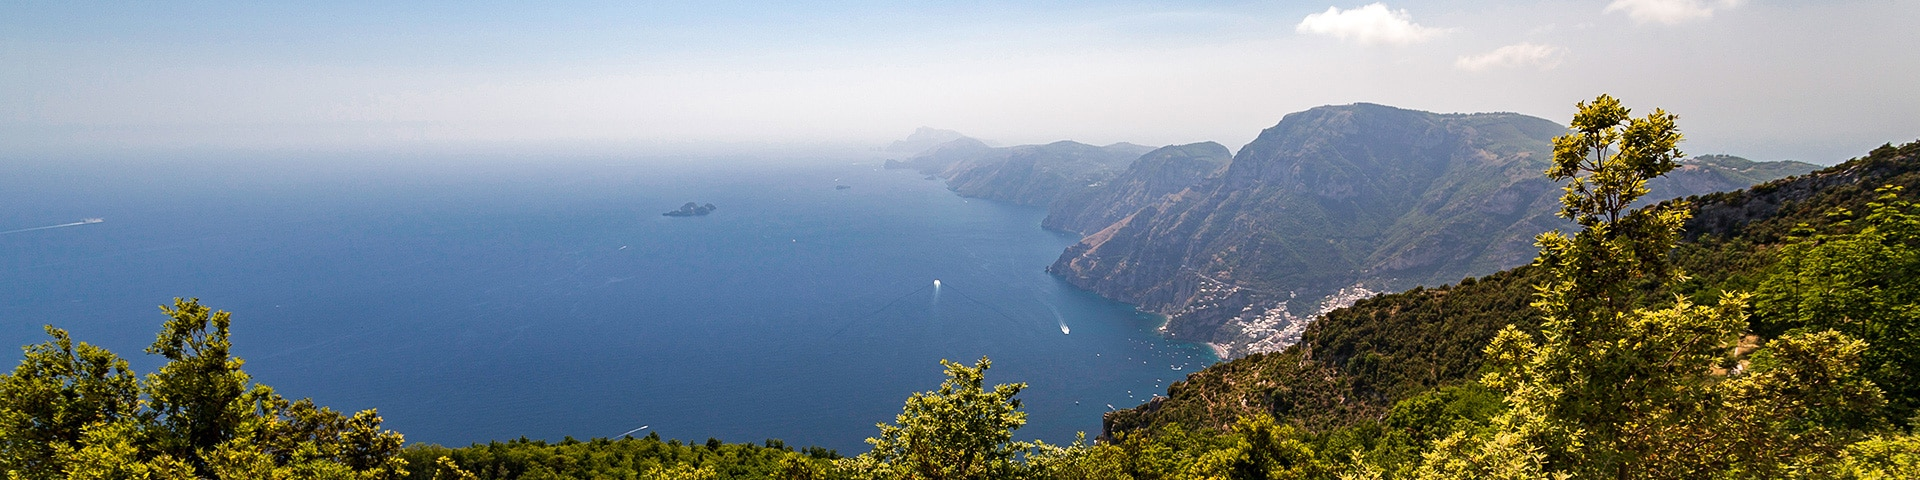 Panorama from the High Path of the Gods hike in Amalfi Coast, Italy